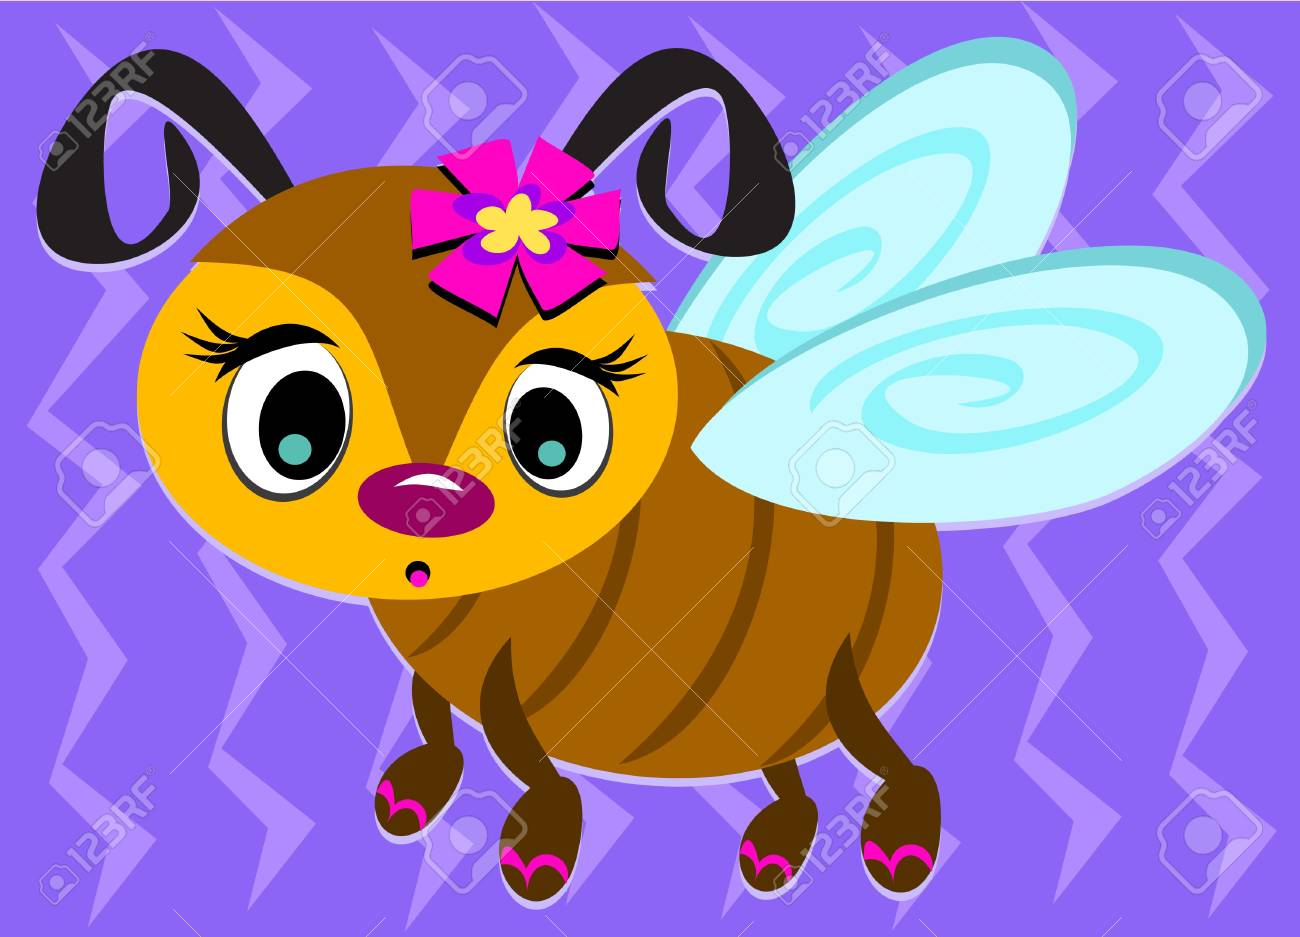 Cute Bee with Sandals Stock Vector - 12002200